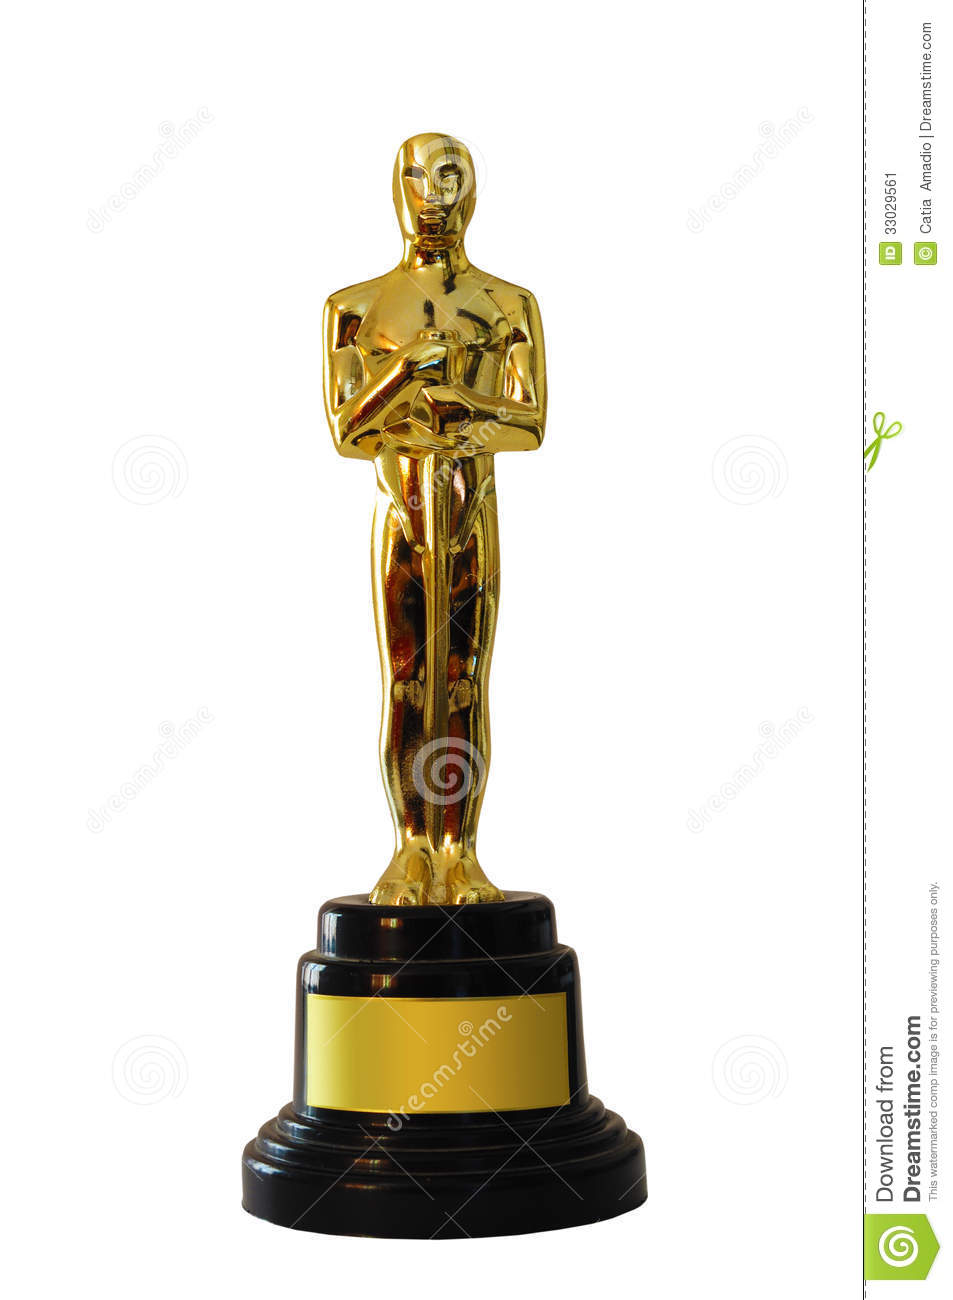 Stock Image Oscar Statue Replica Space Text Image33029561 on oscar statuette clip art